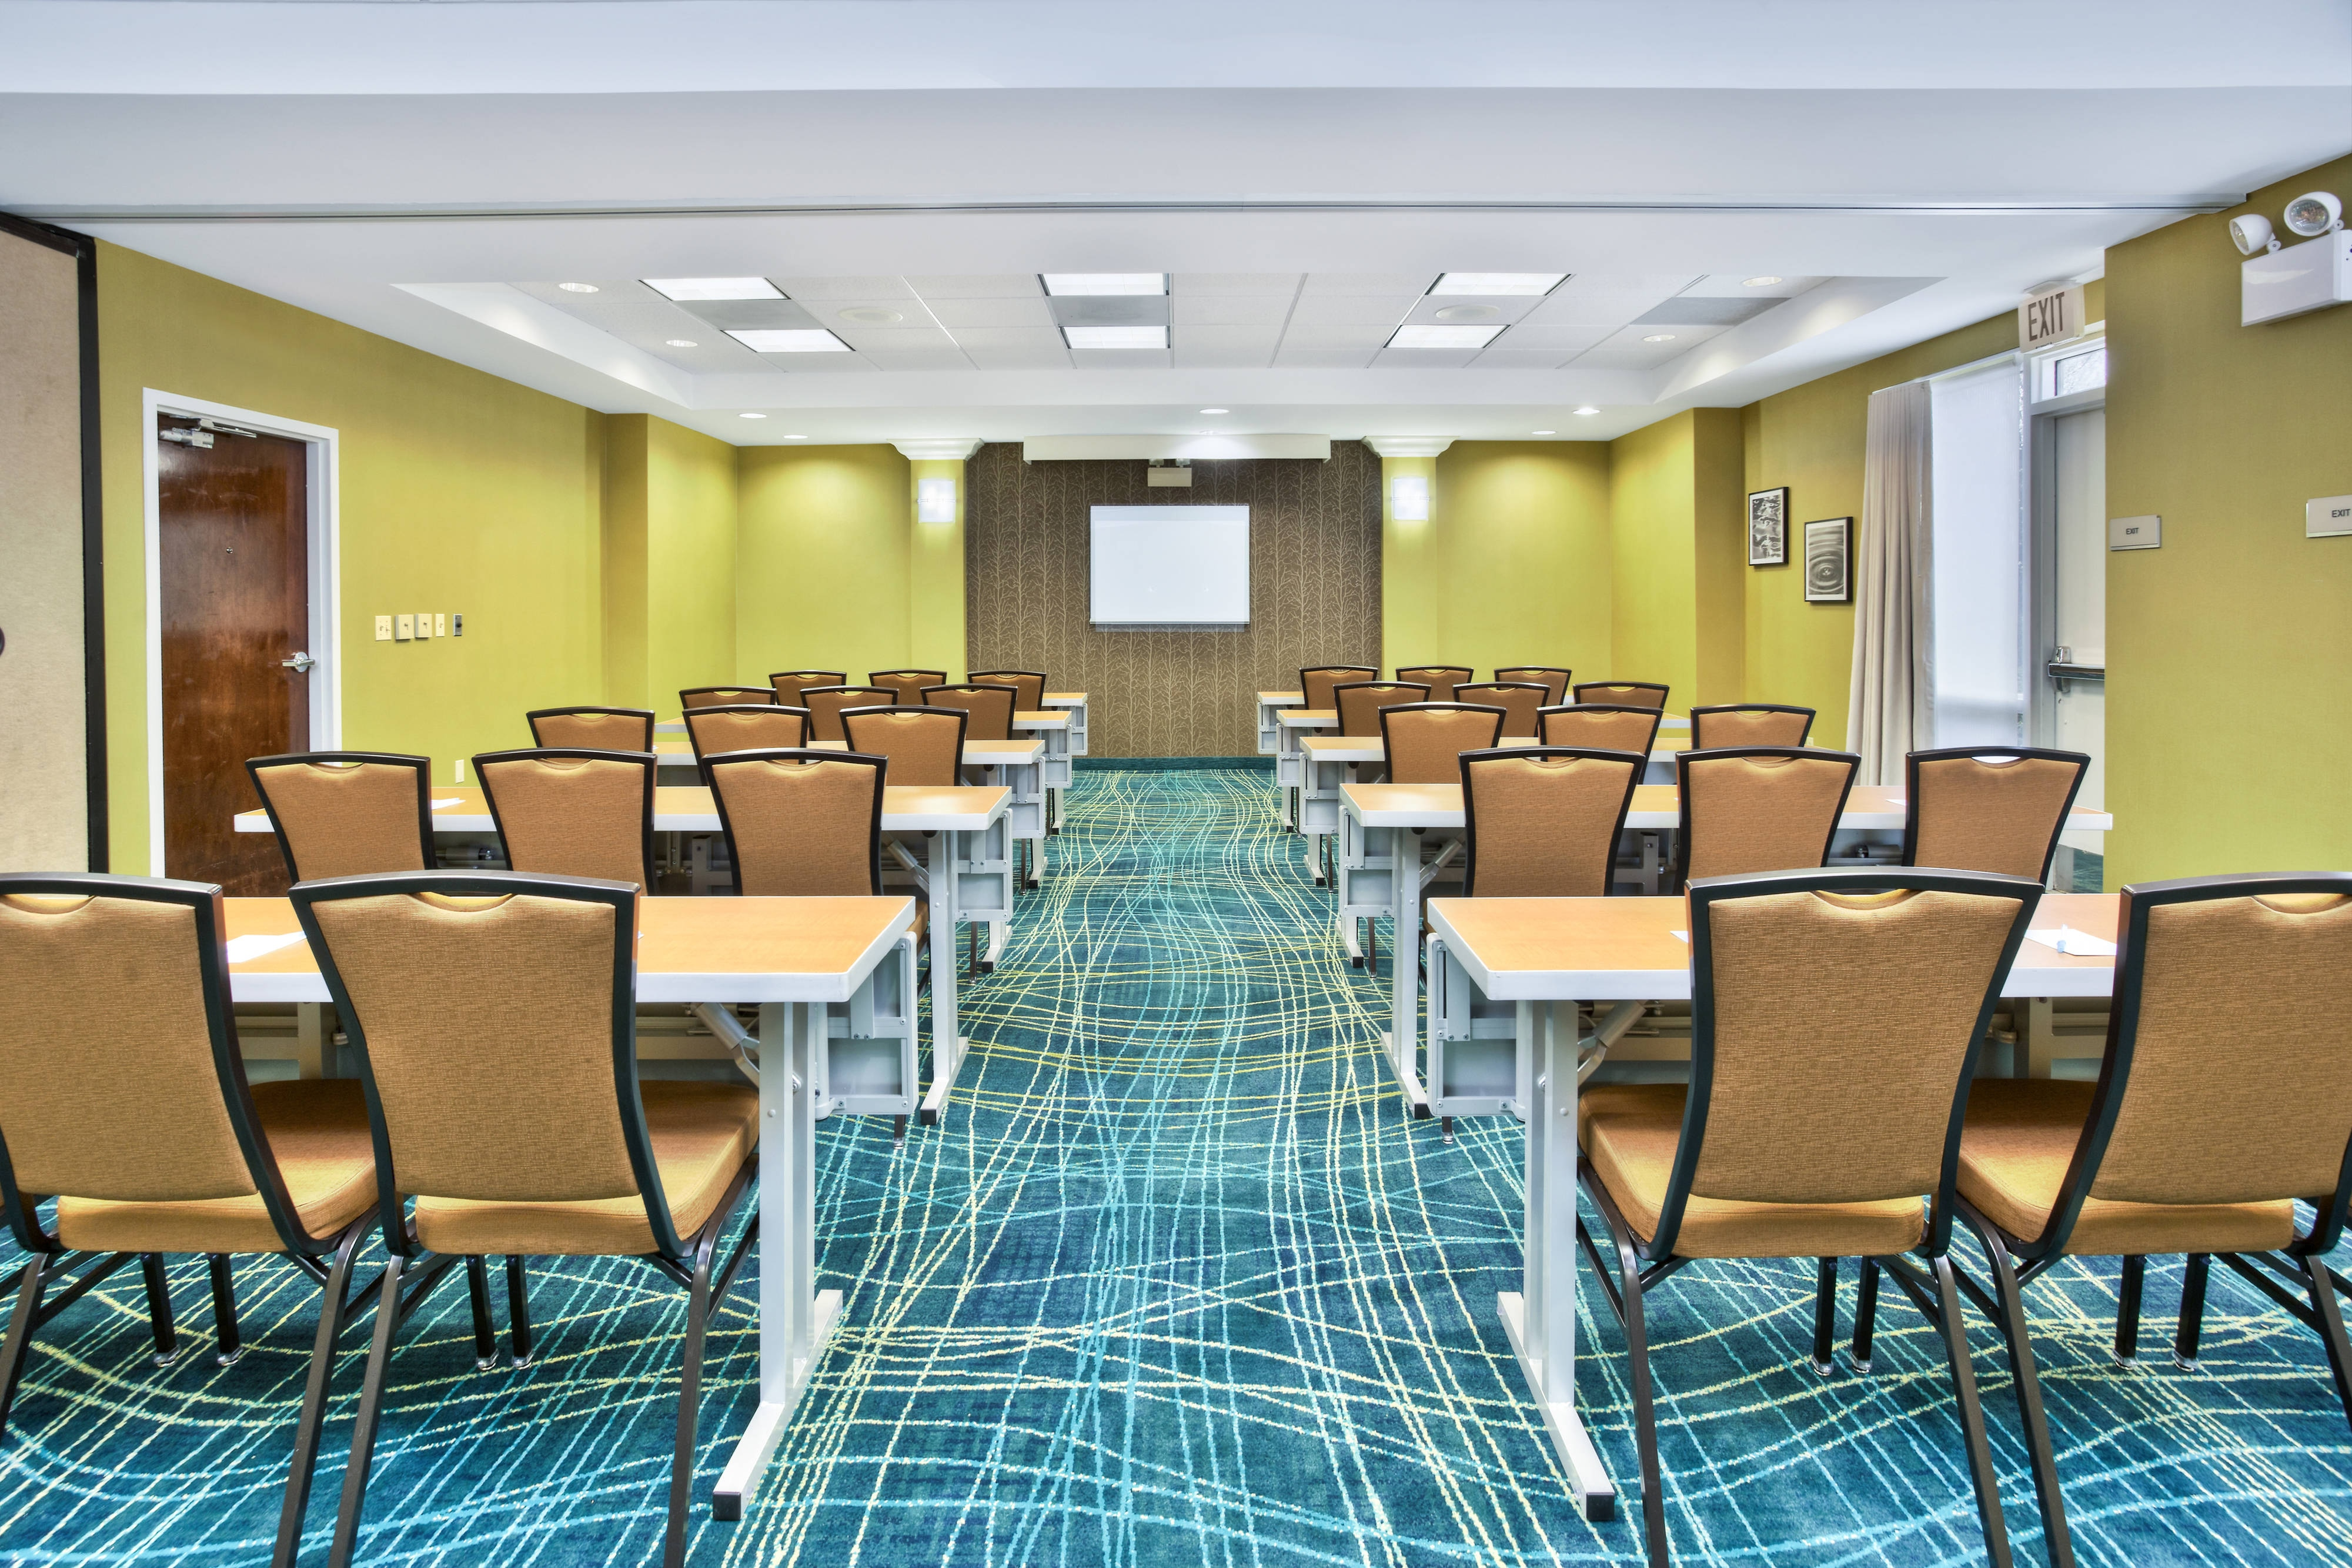 SpringHill Suites Chicago Southwest at Burr Ridge/Hinsdale Meeting Room Classroom Setup